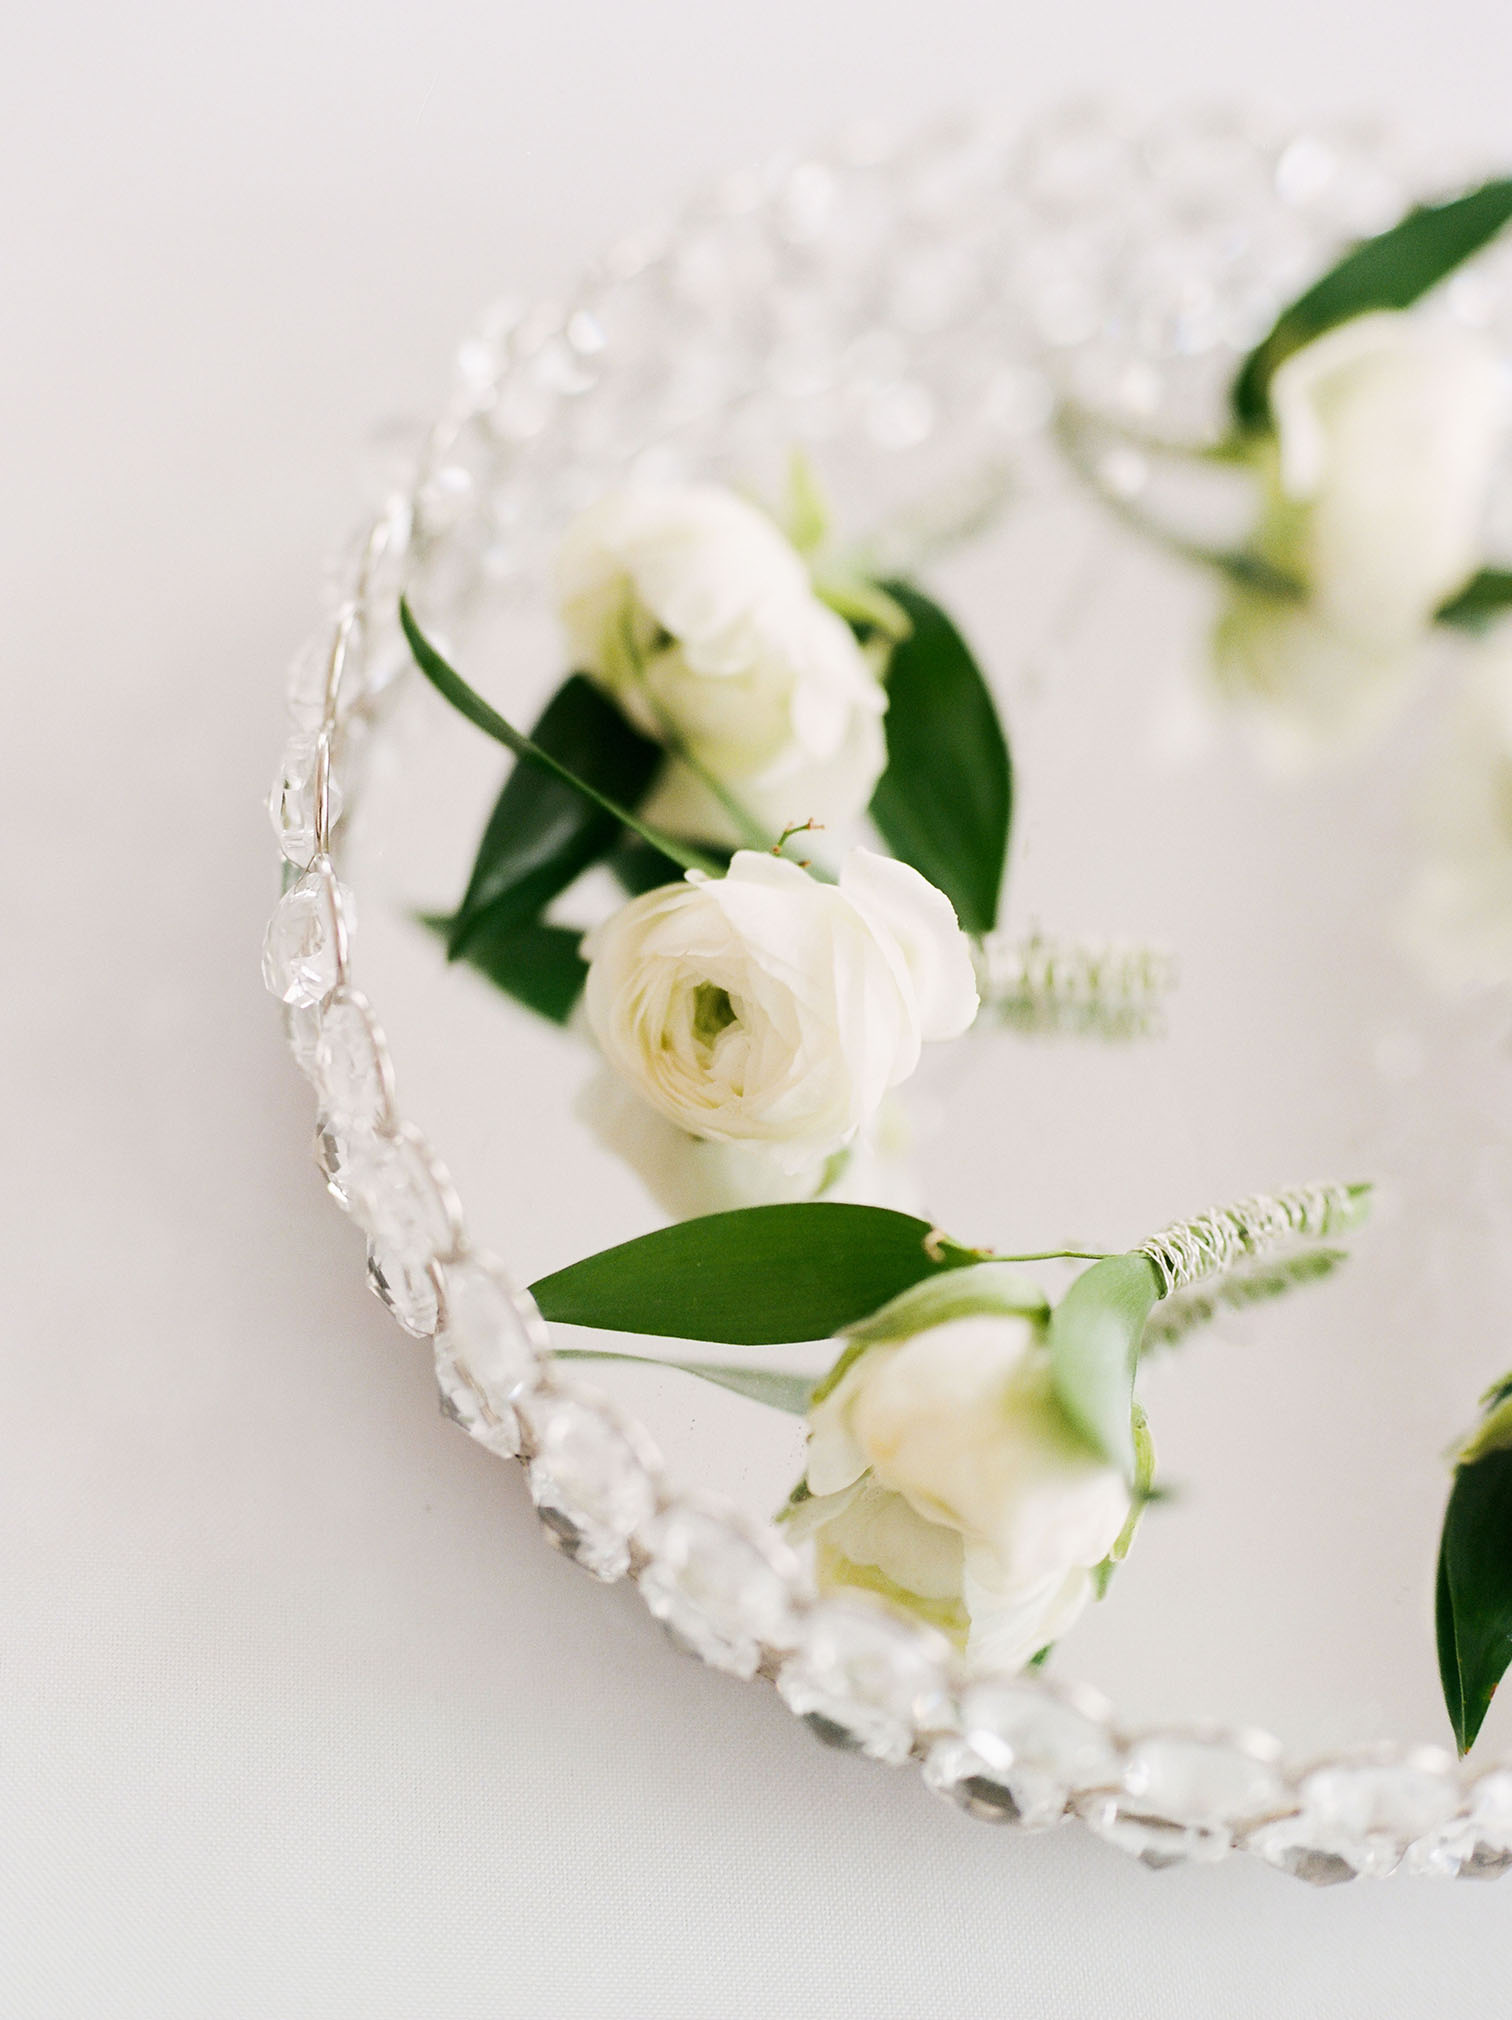 Denver Colorado Wedding Photographer, White Rose Wedding Boutonniere Ideas